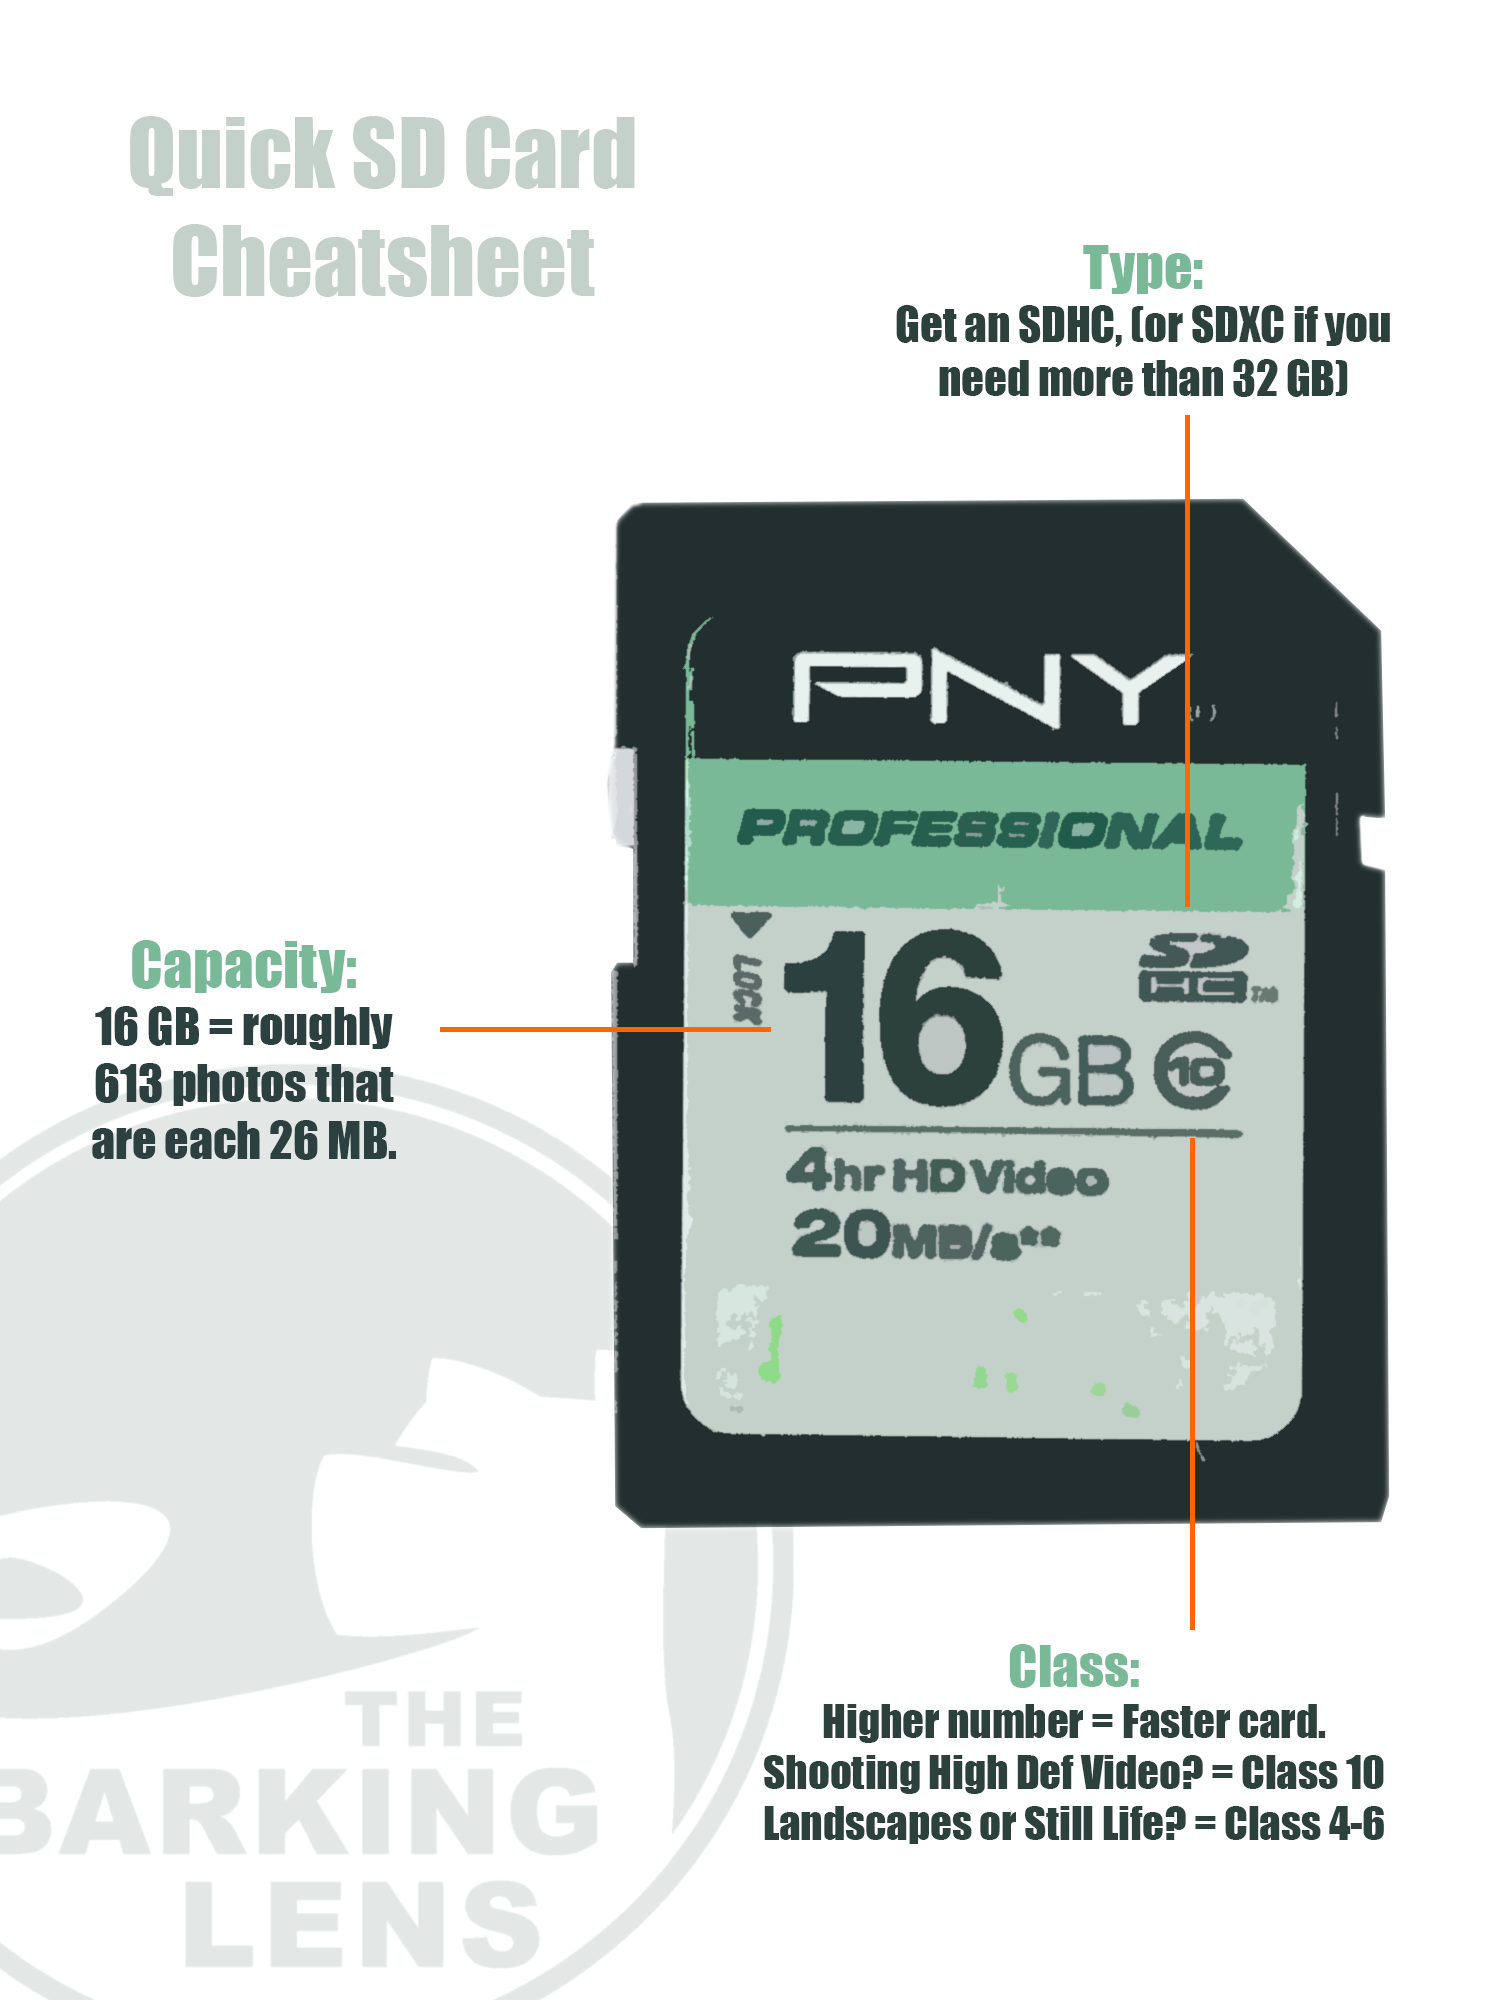 How to buy an SD Card Cheatsheet